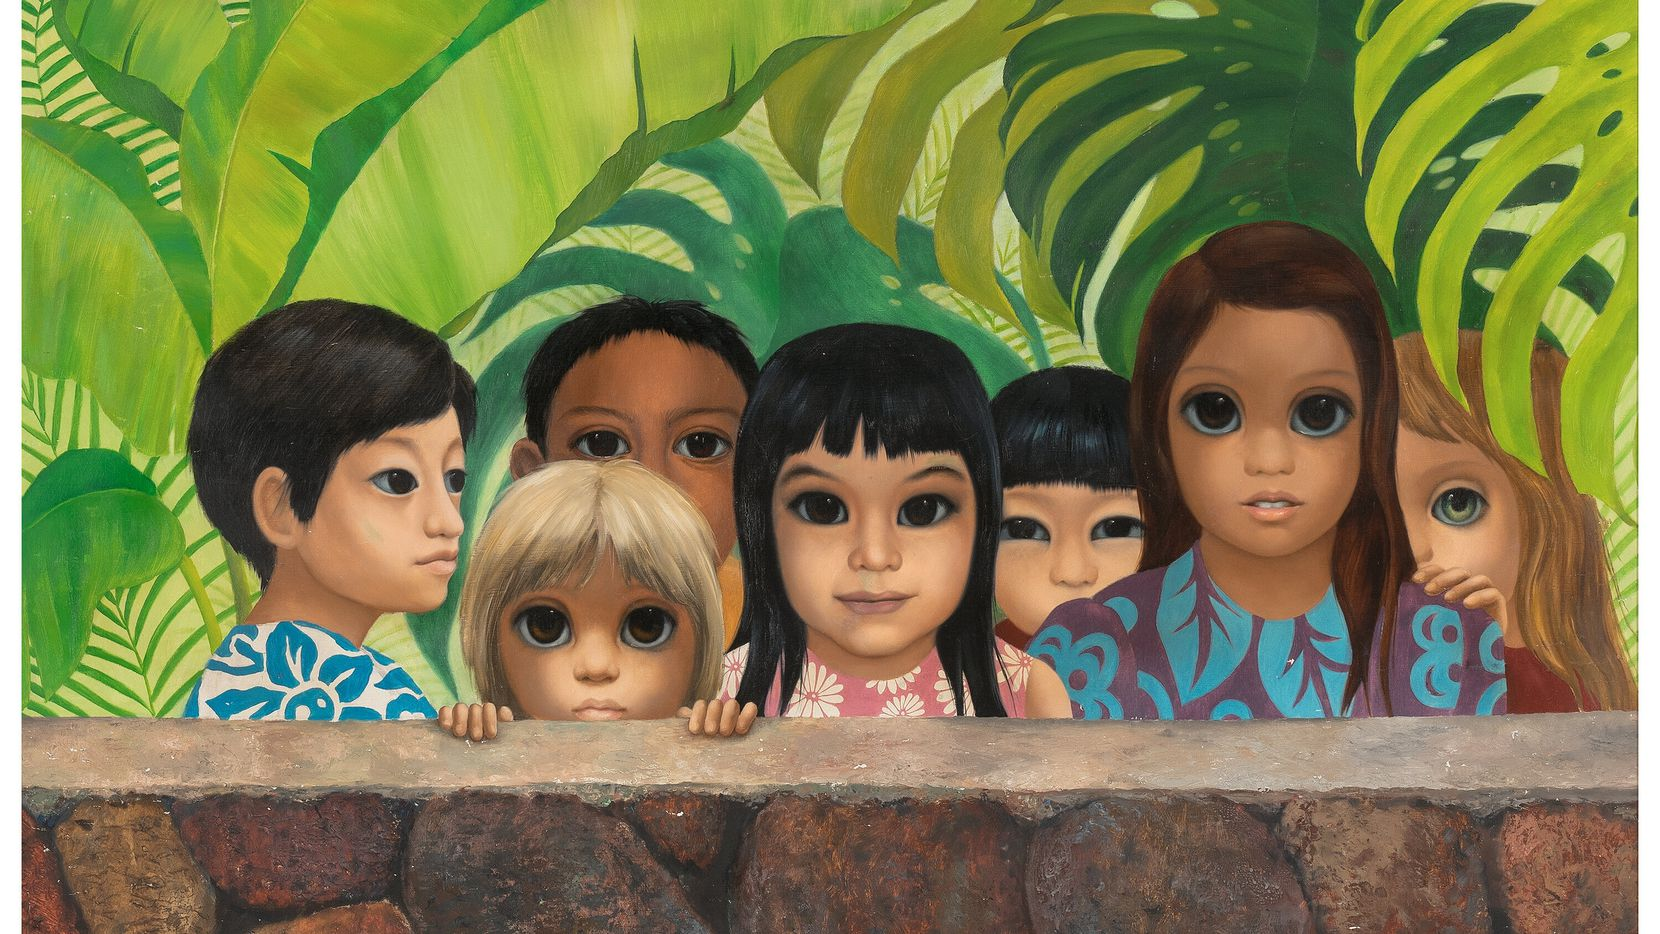 """In November 1972, the painting """"Eyes Upon You"""" by artist Margaret Keane went missing from a waiting room in a dentist's office in Honolulu. Nearly 50 years later, it was returned to the family who originally owned it."""